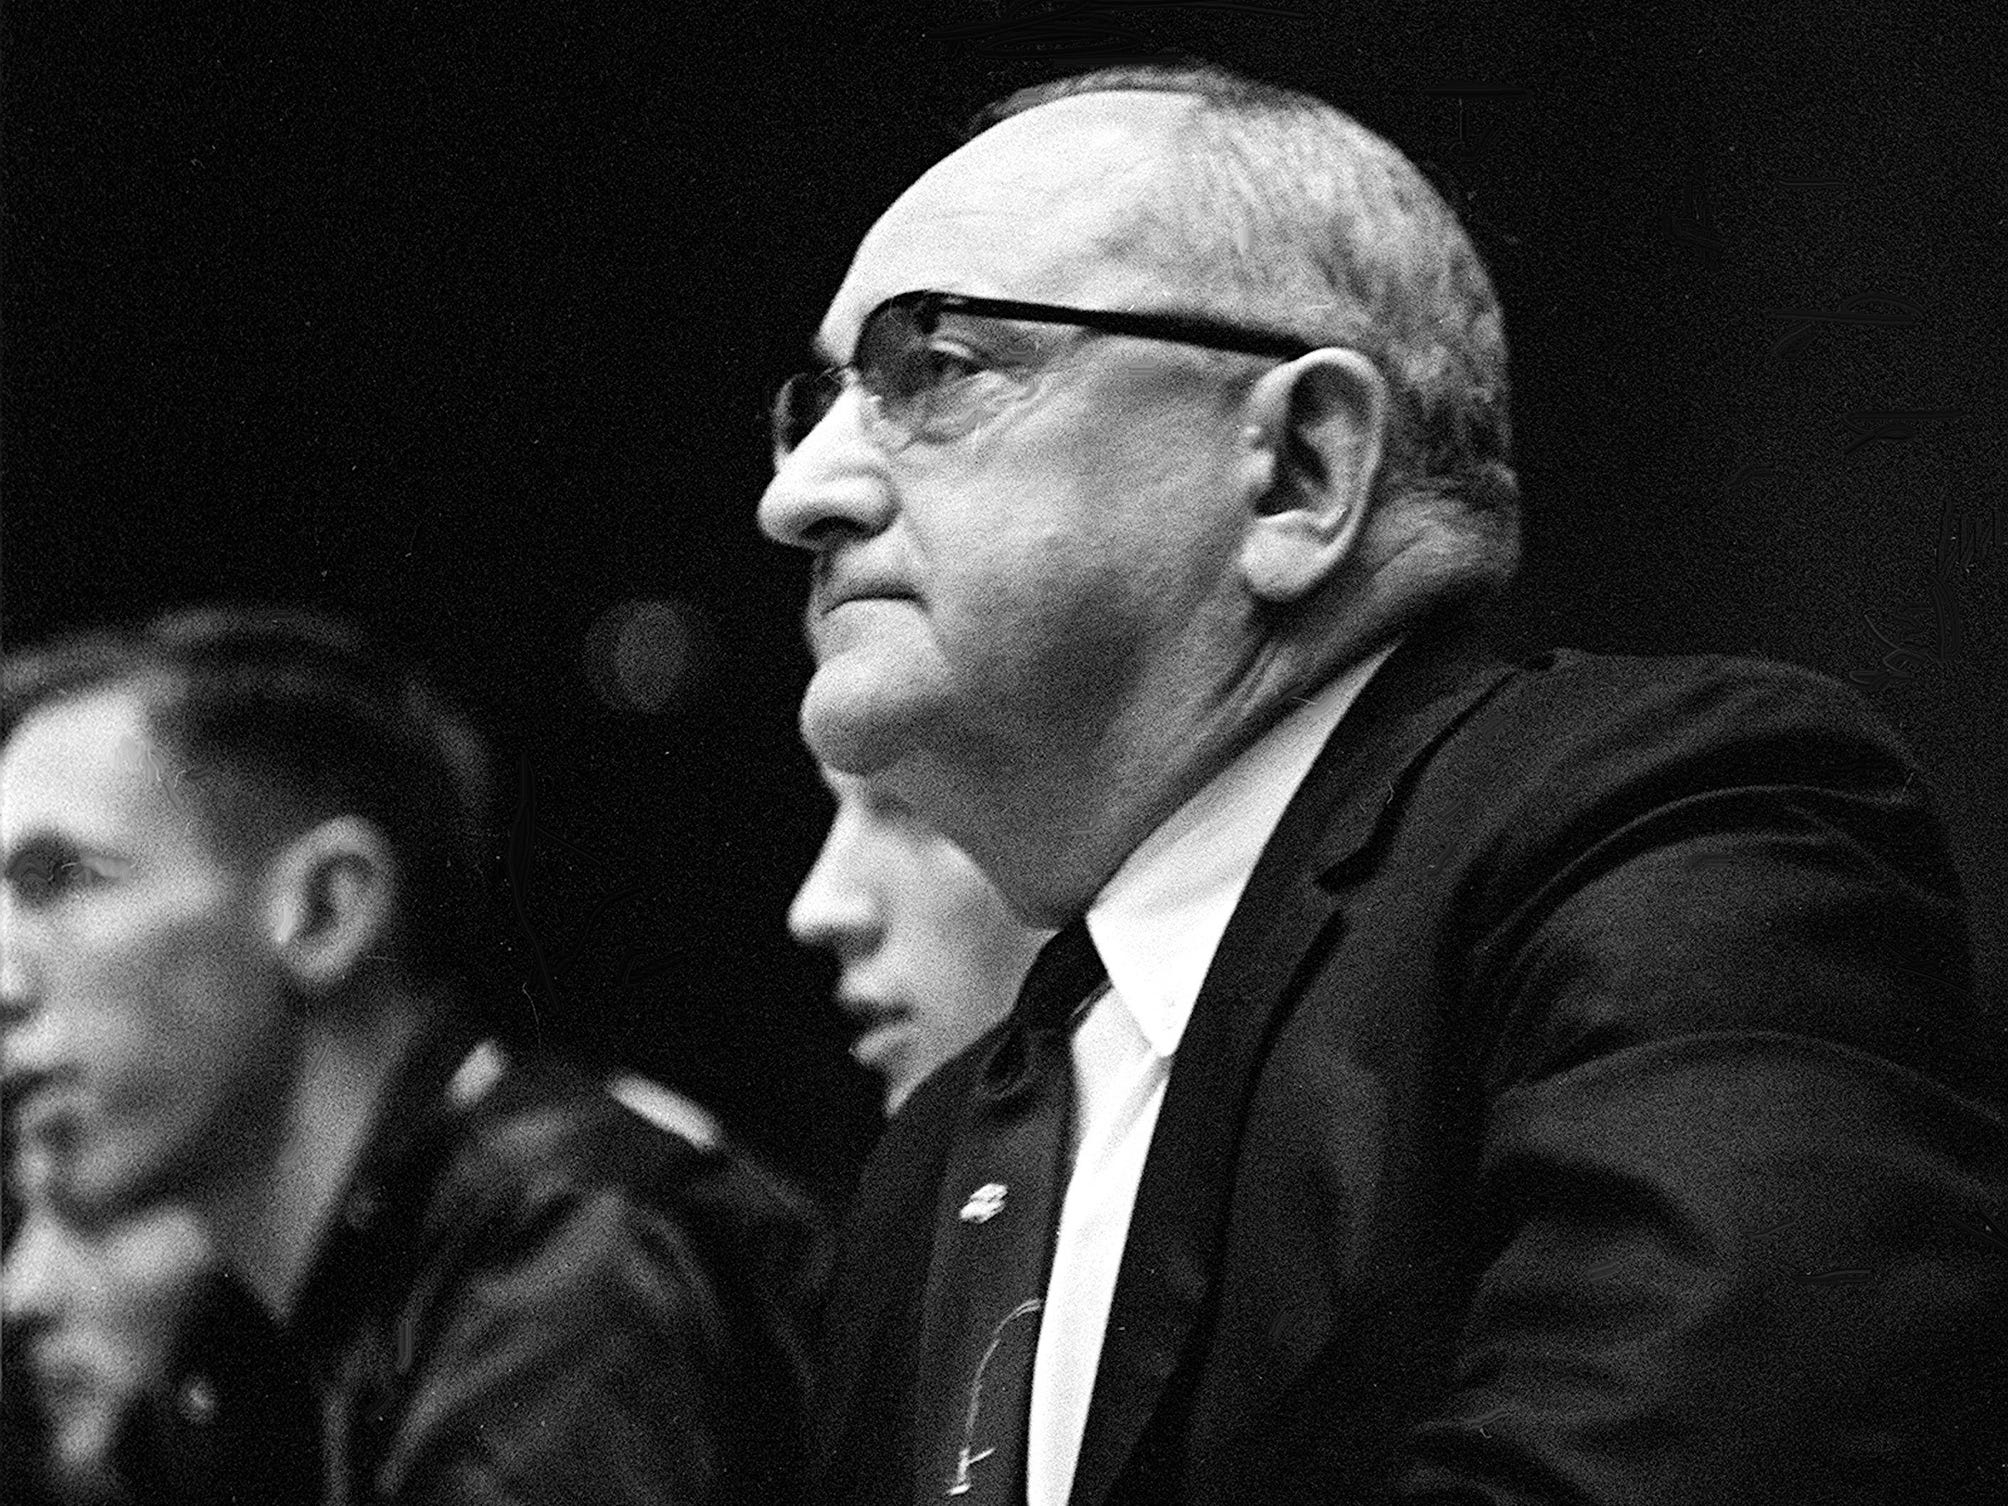 Kentucky head coach Adolph Rupp keeps an eye on his team against Vanderbilt Jan. 9, 1961. The Wildcats became the Commodores' 11th straight victim, falling 64-62 before 7,324 fans at Memorial Gym.